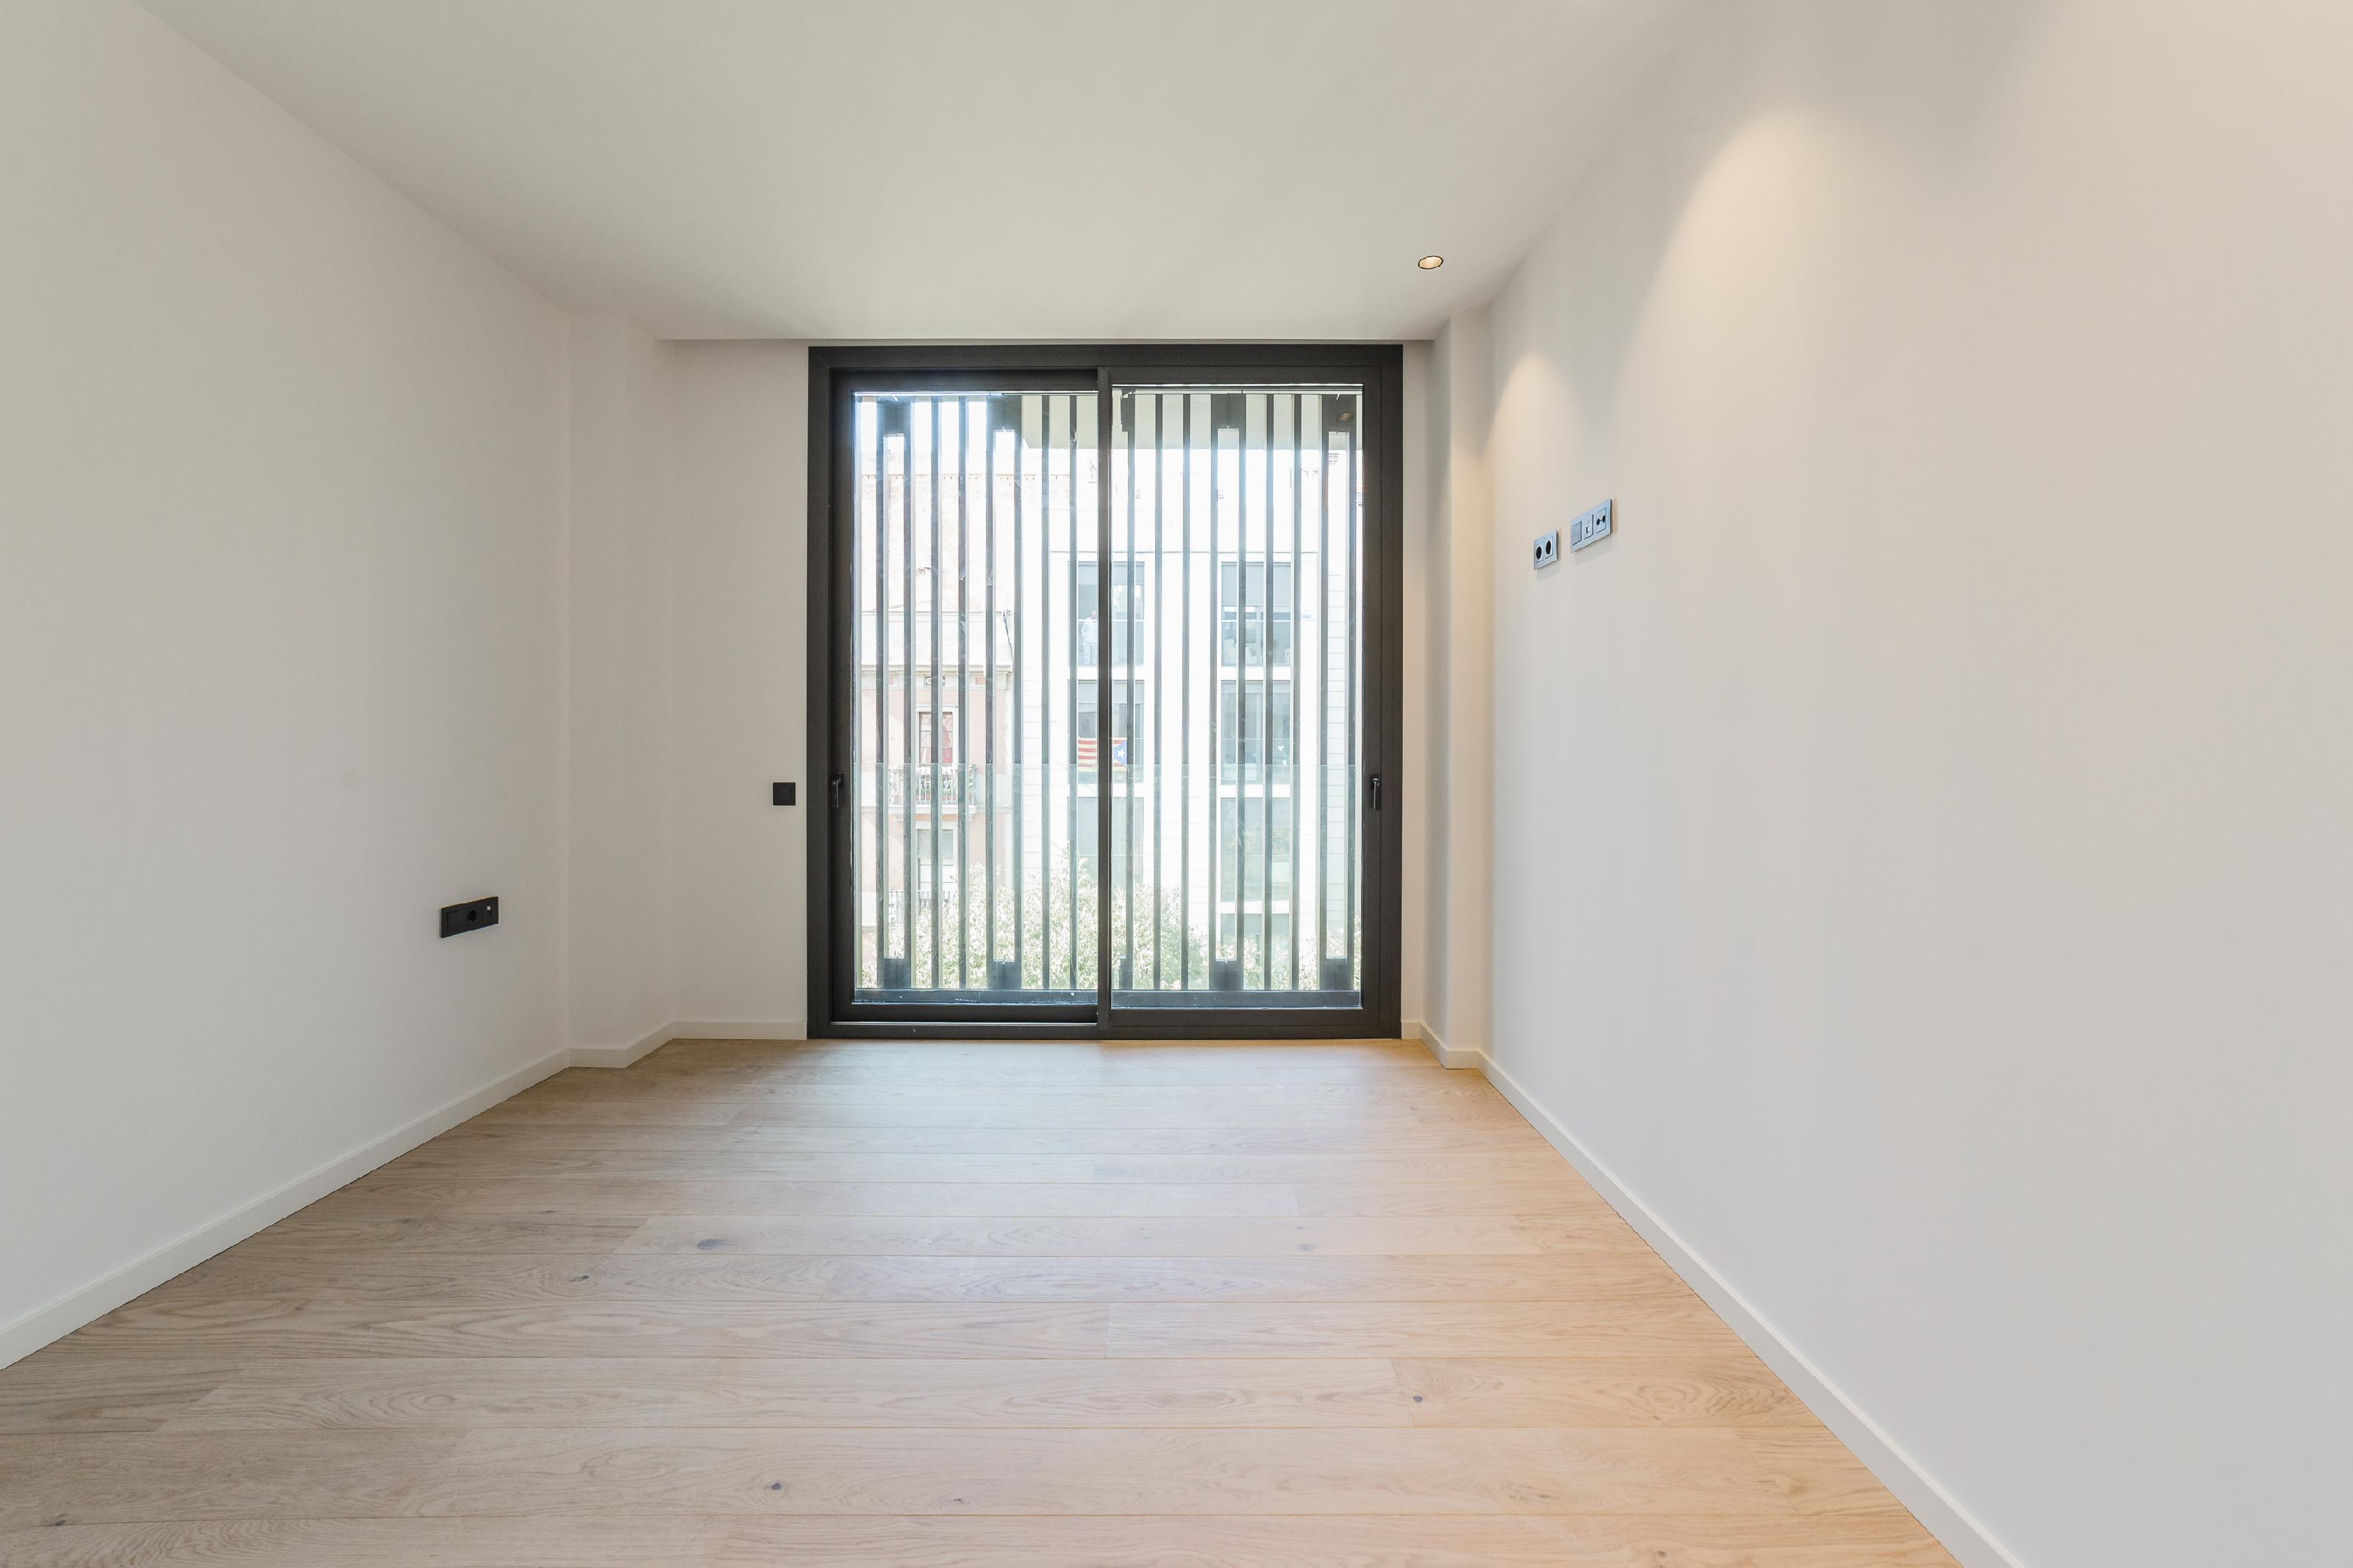 182474 Apartment for sale in Eixample, Old Left Eixample 16